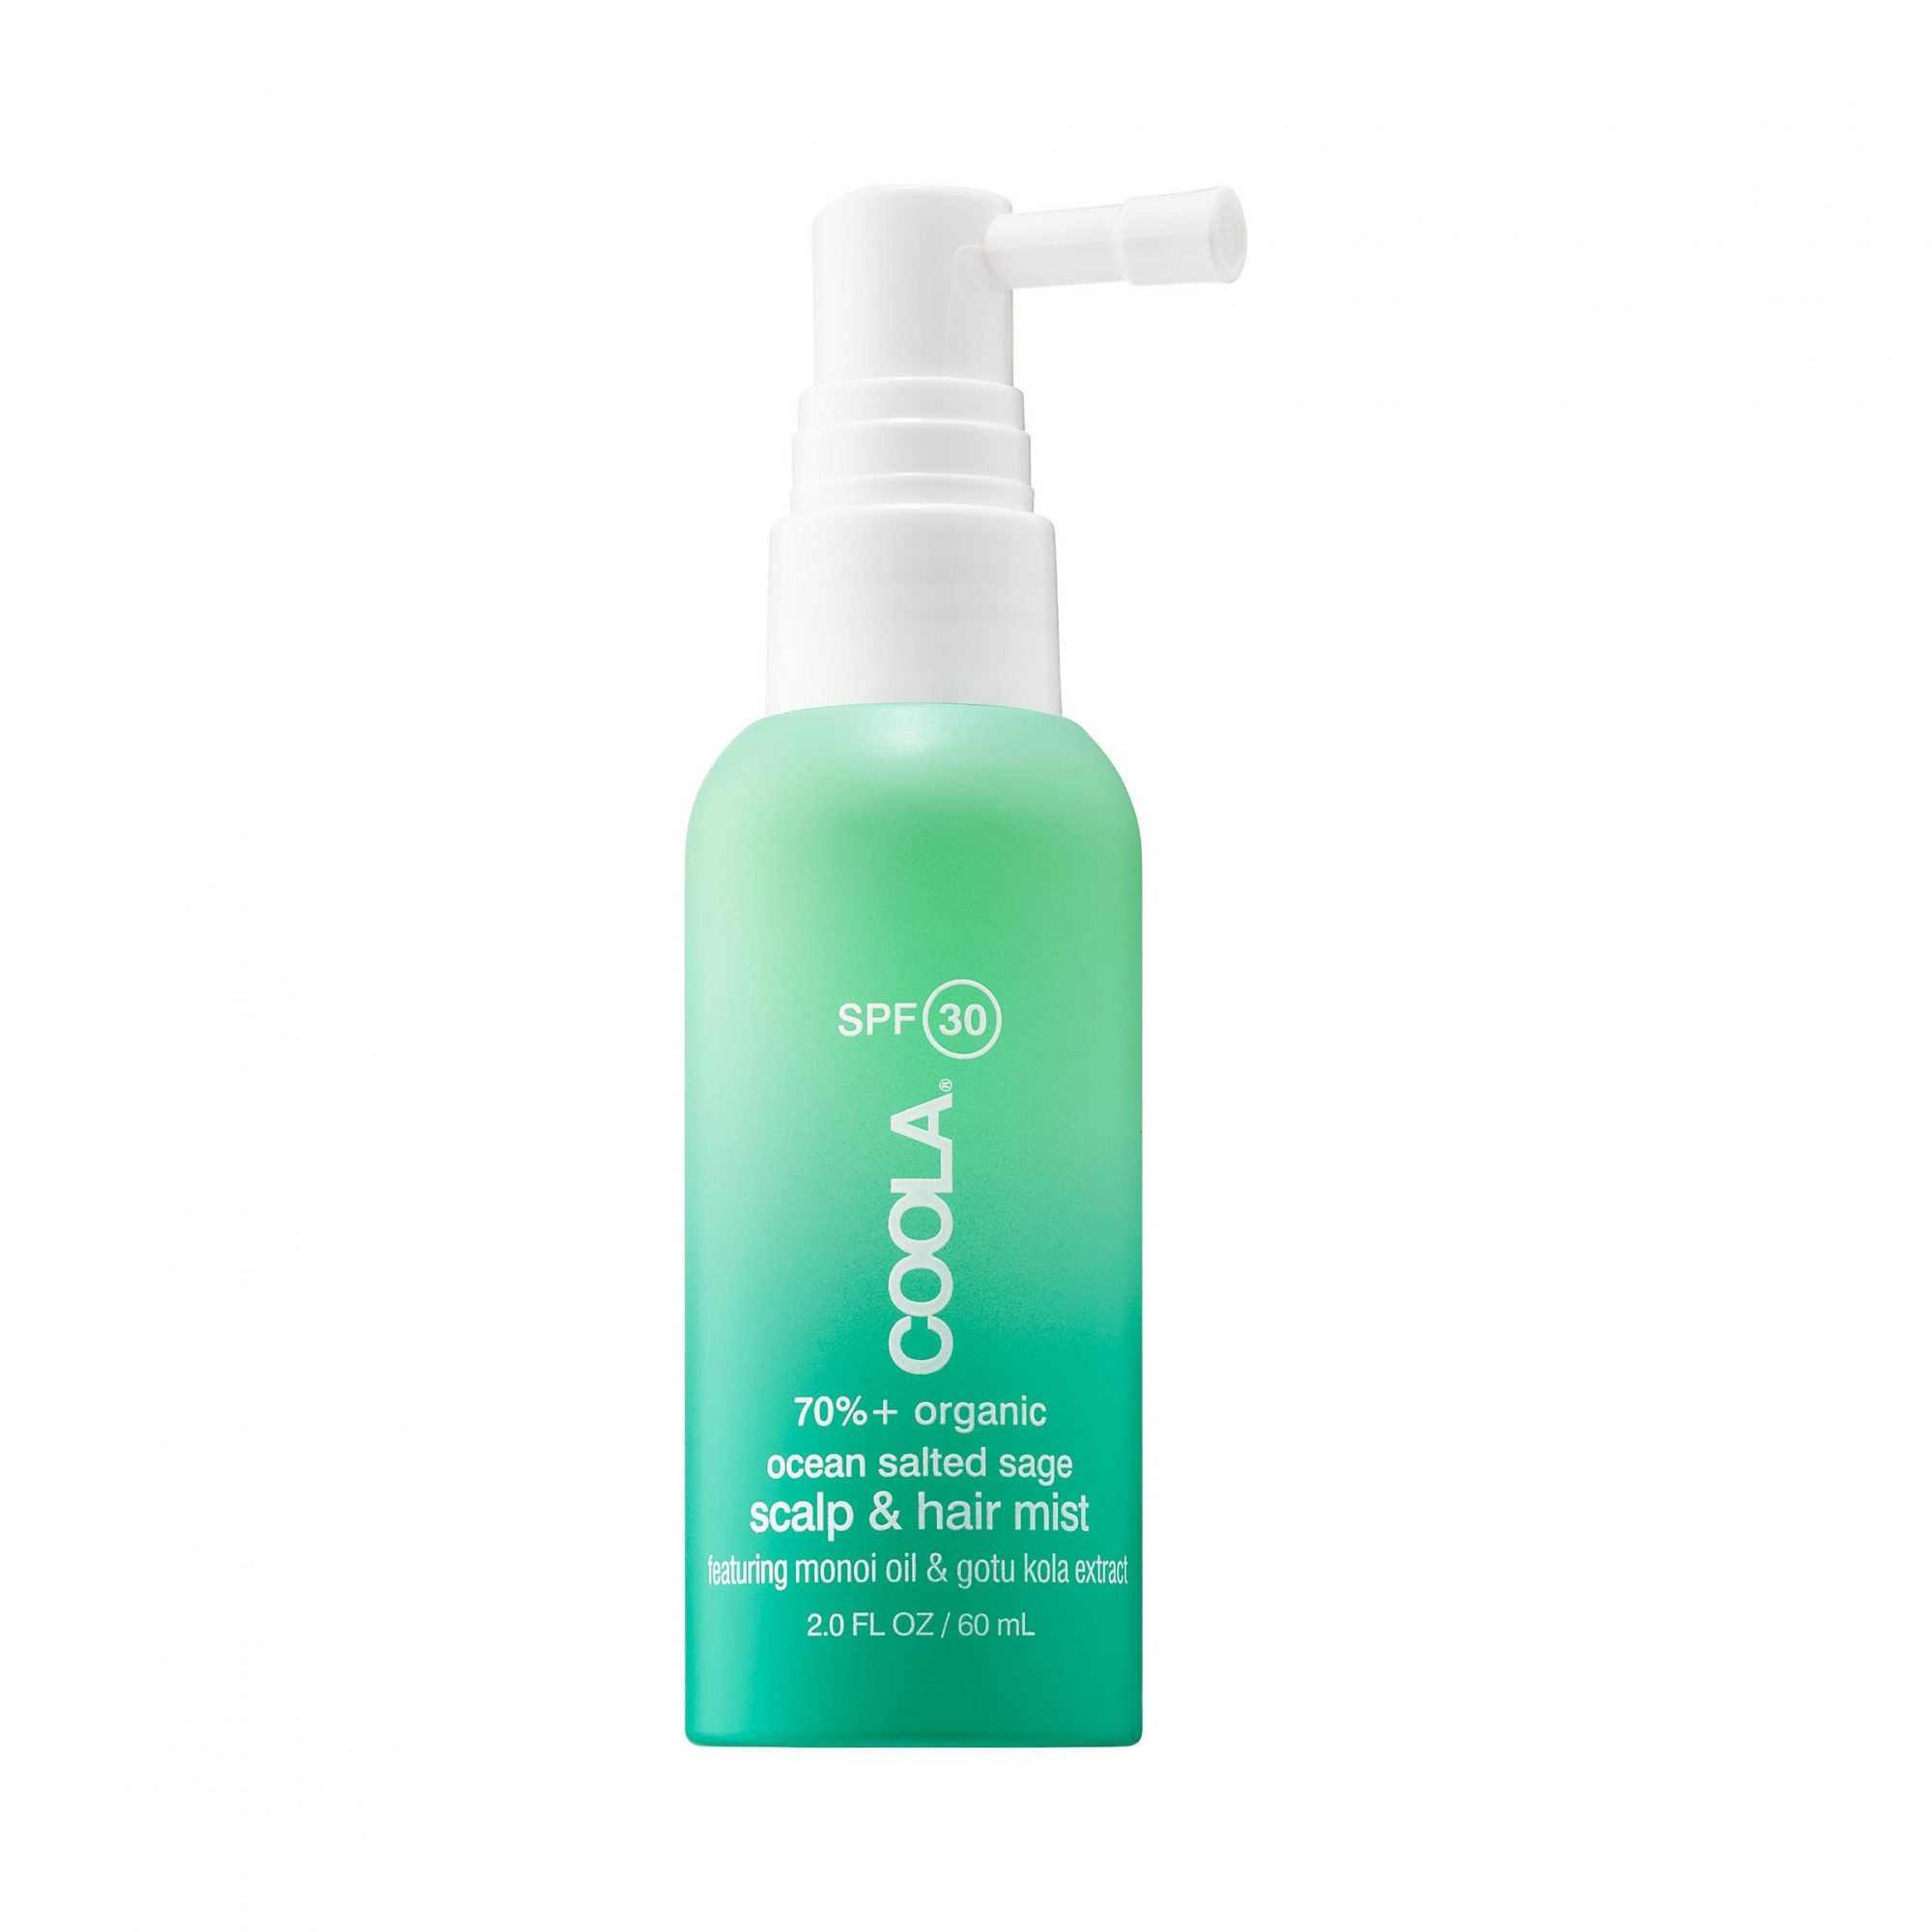 Sun Protection: COOLA Organic Scalp & Hair Mist SPF 30